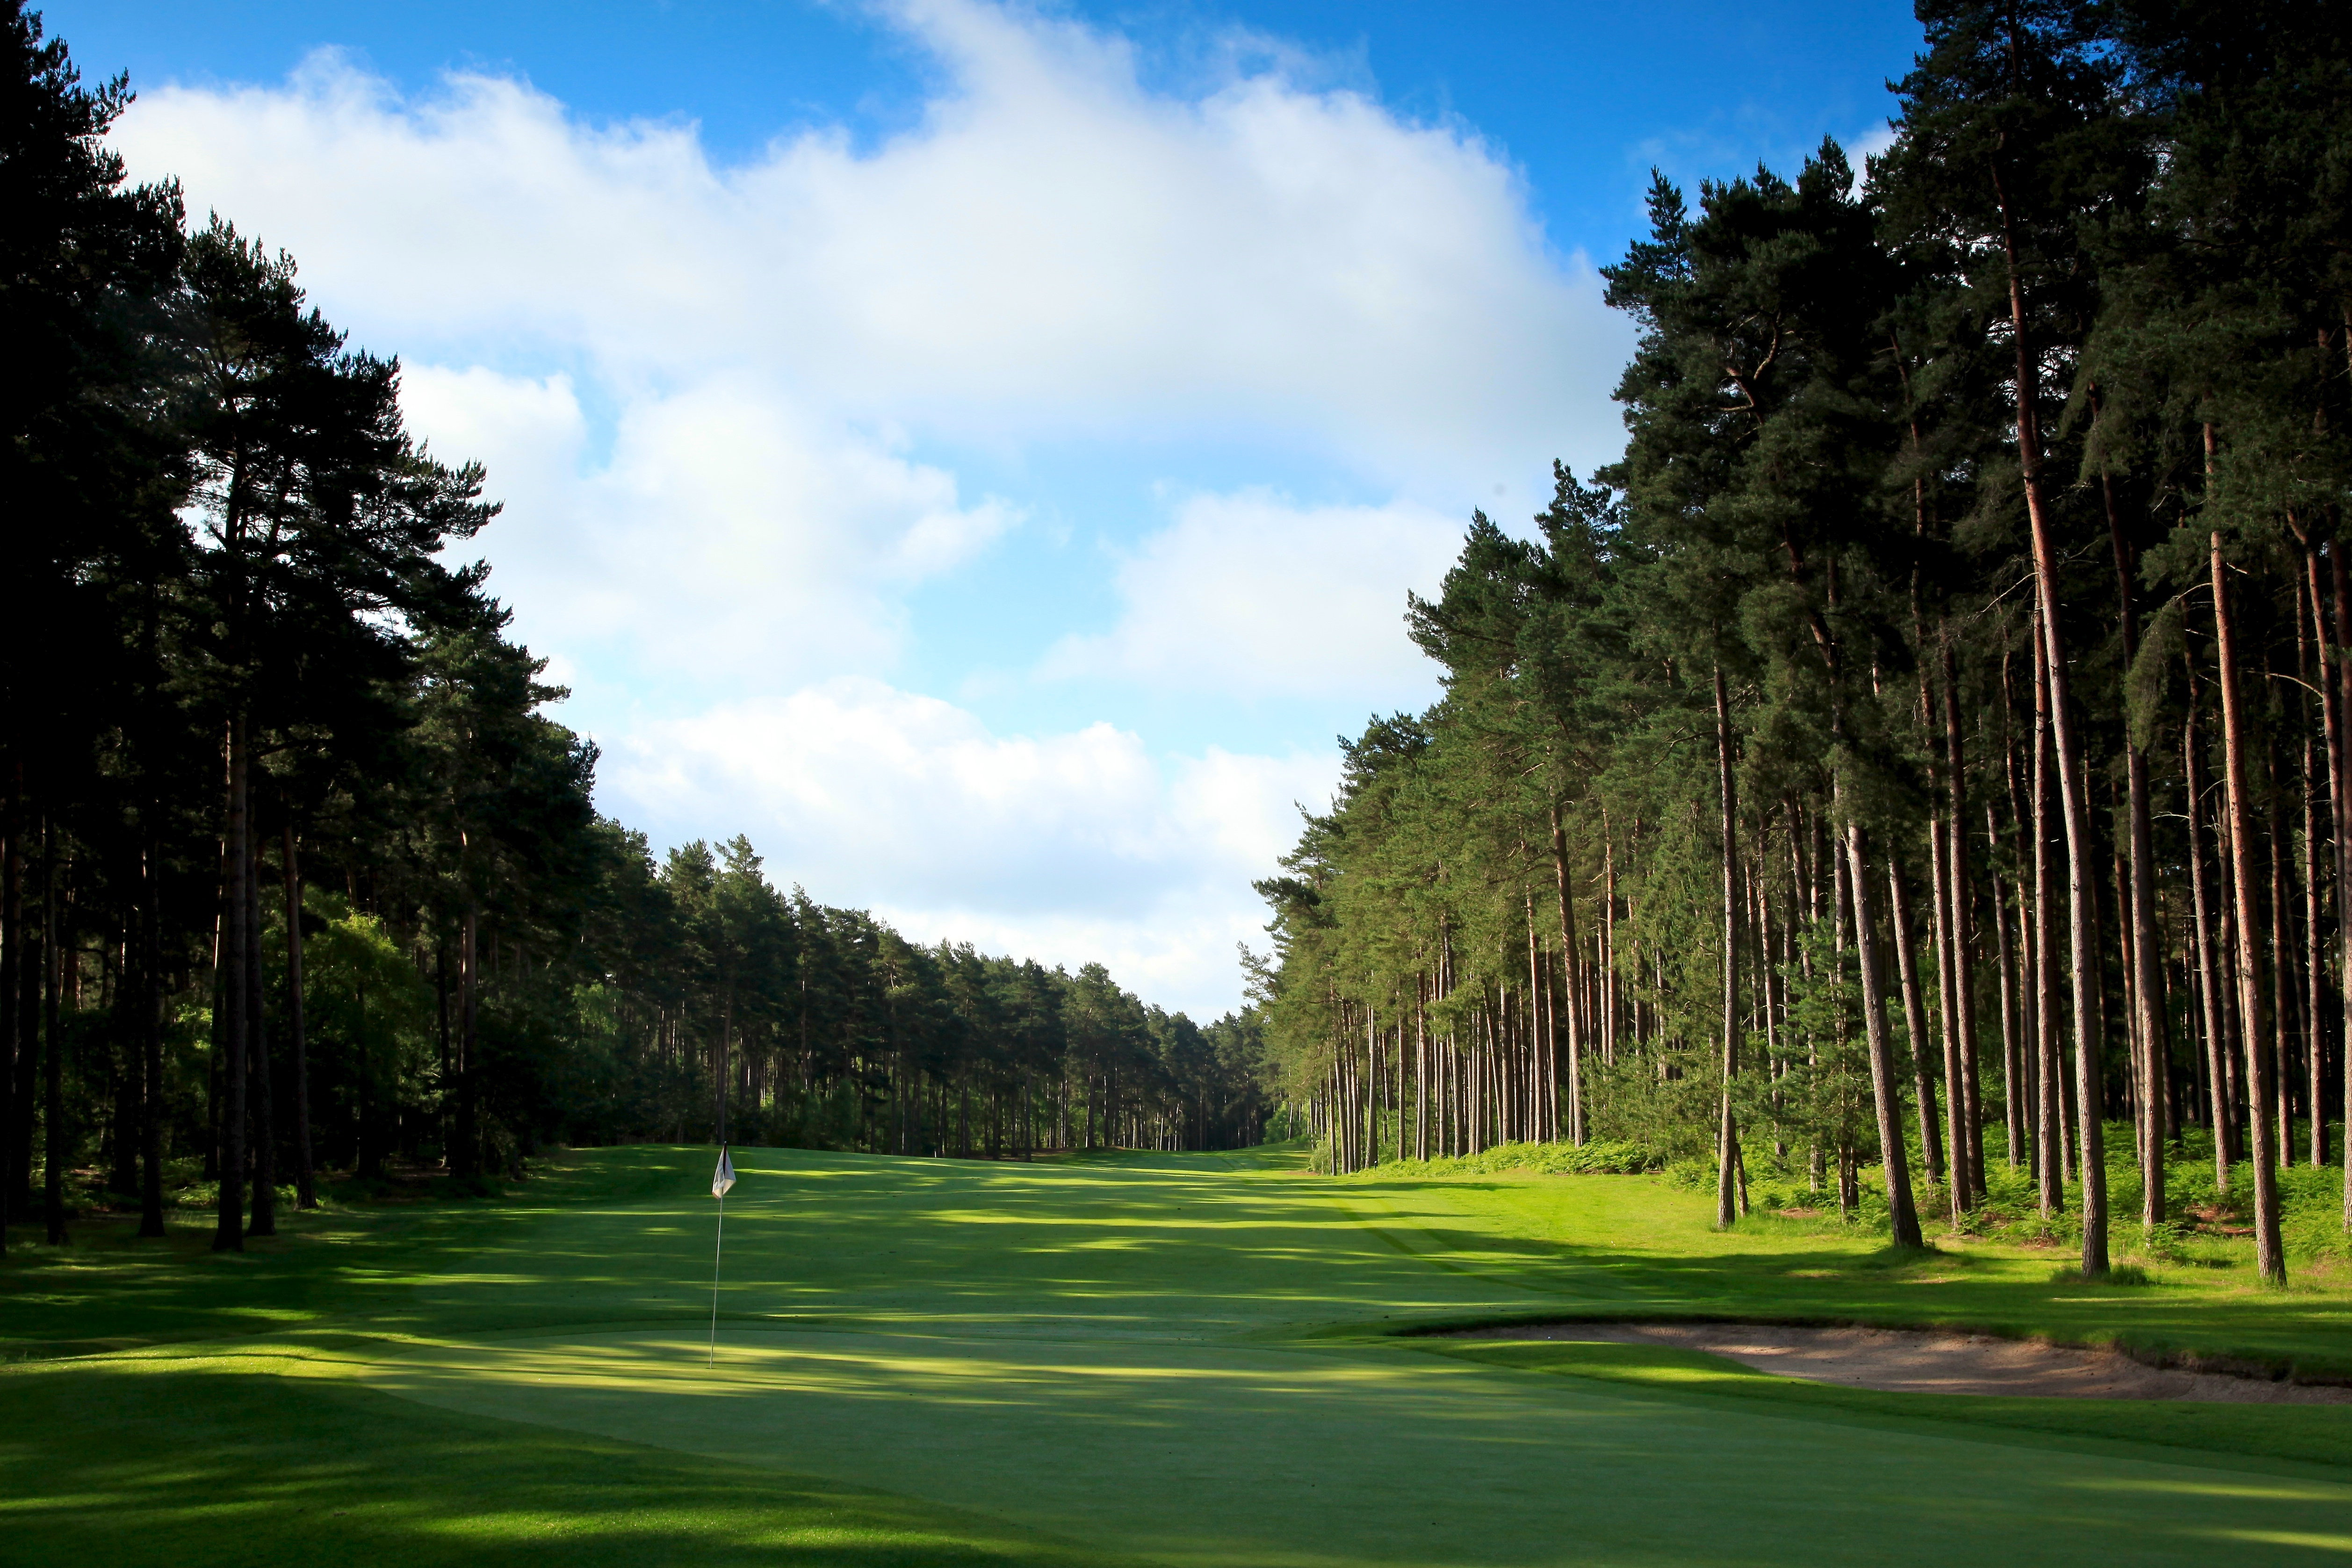 94 Woburn Duchess Top 100 Courses Uk Amp Ireland 2015 16 Golf Monthly